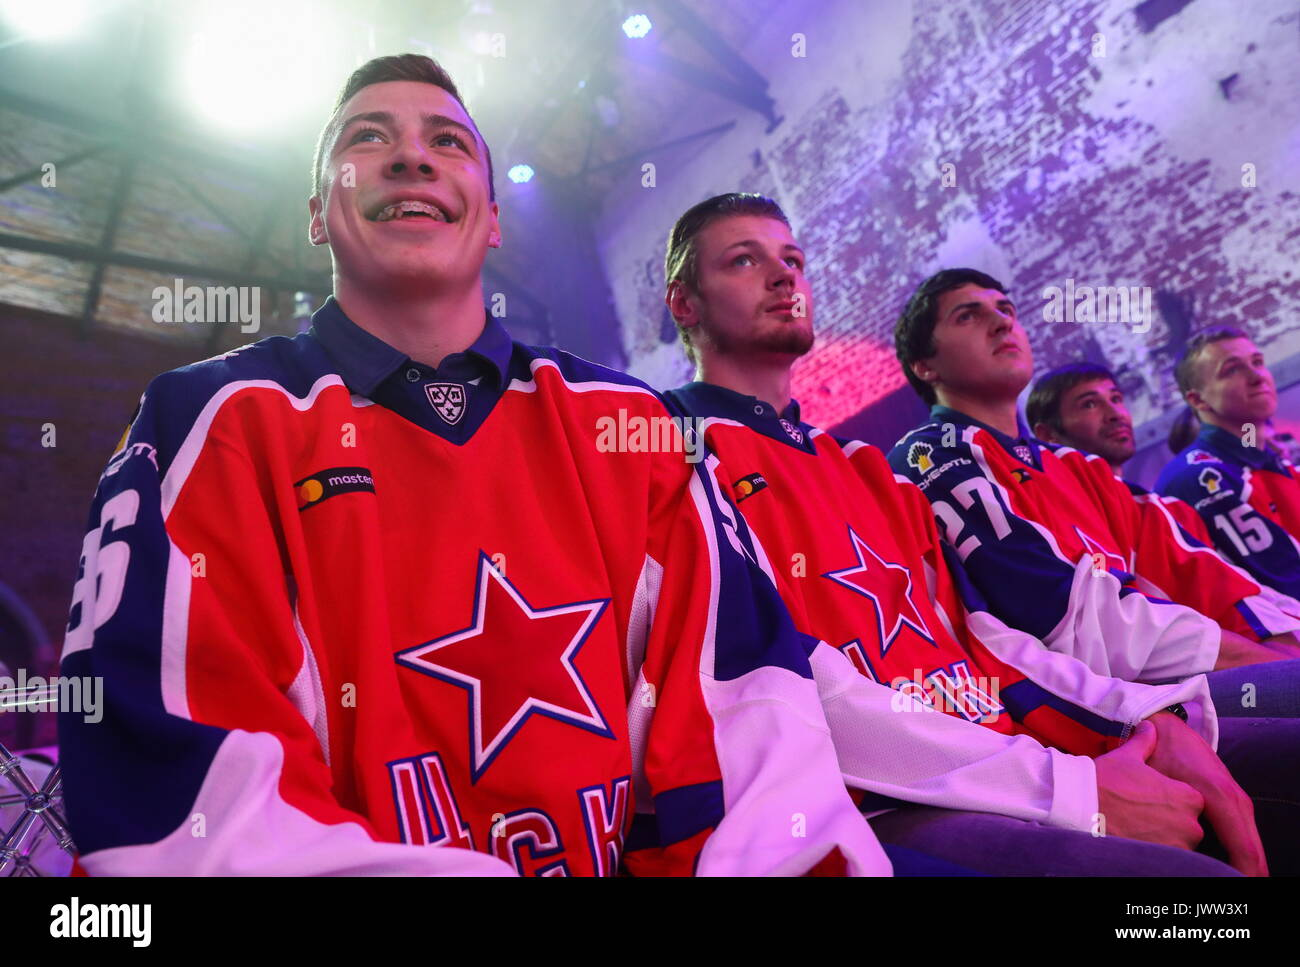 Moscow, Russia. 13th Aug, 2017. Forwards Andrei Kuzmenko, Valery Nichushkin, and Kirill Petrov (L-R) at the unveiling - Stock Image